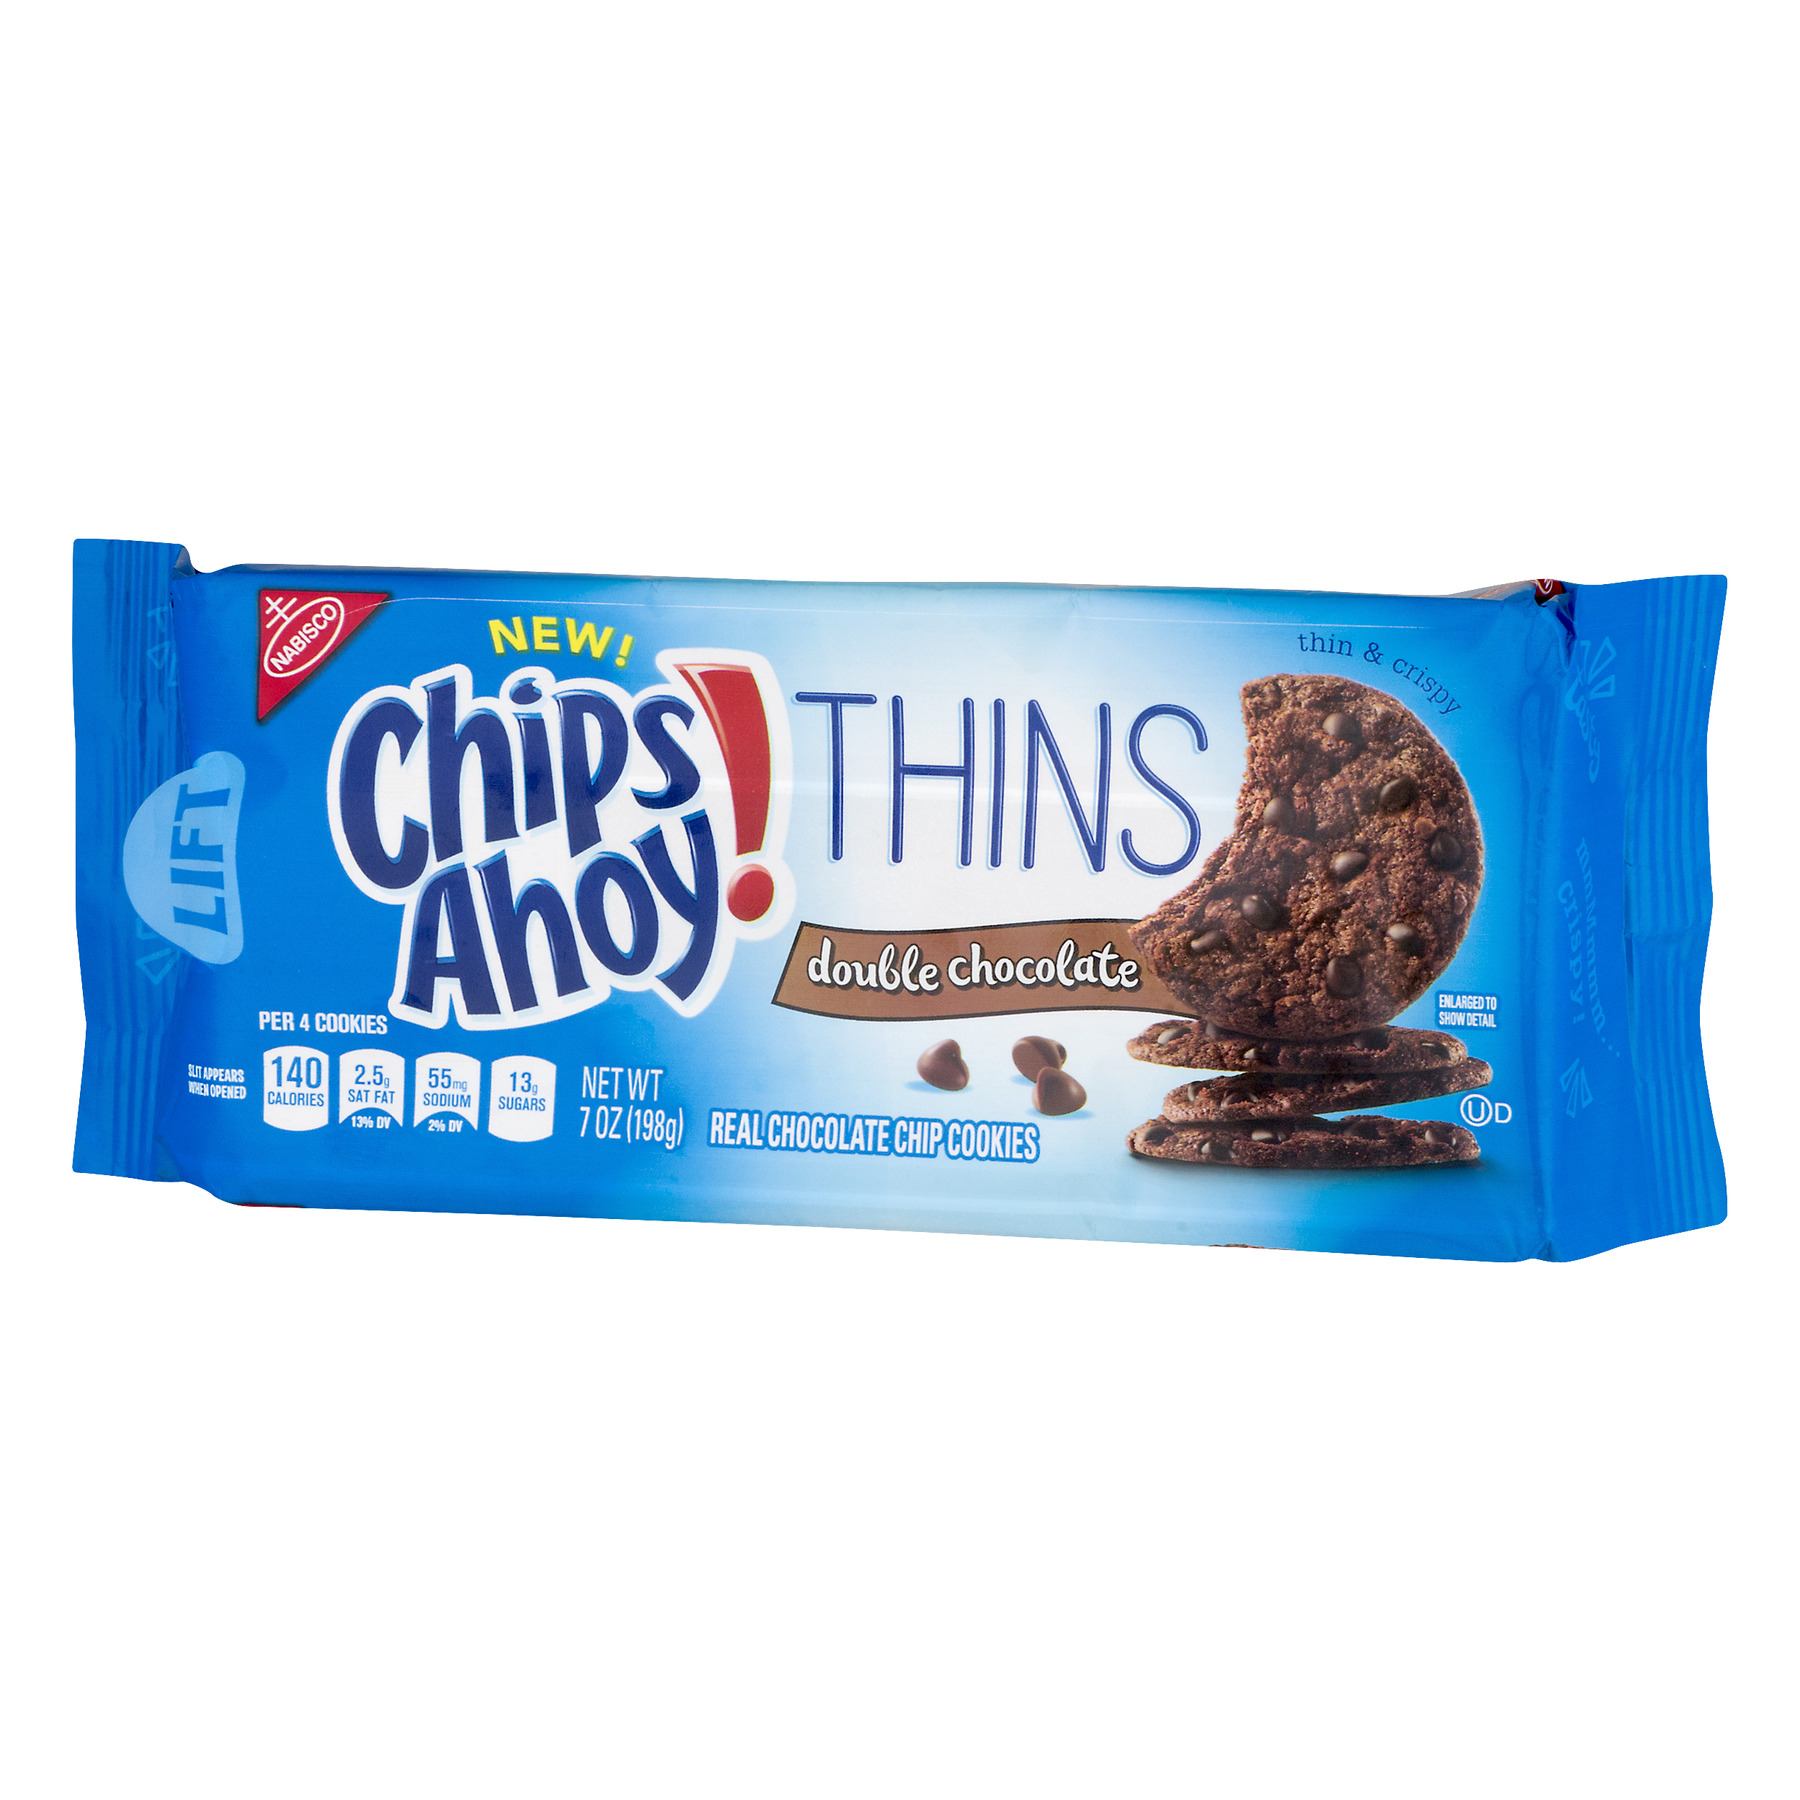 Chips Ahoy!, Chips Ahoy! Thins Double Chocolate